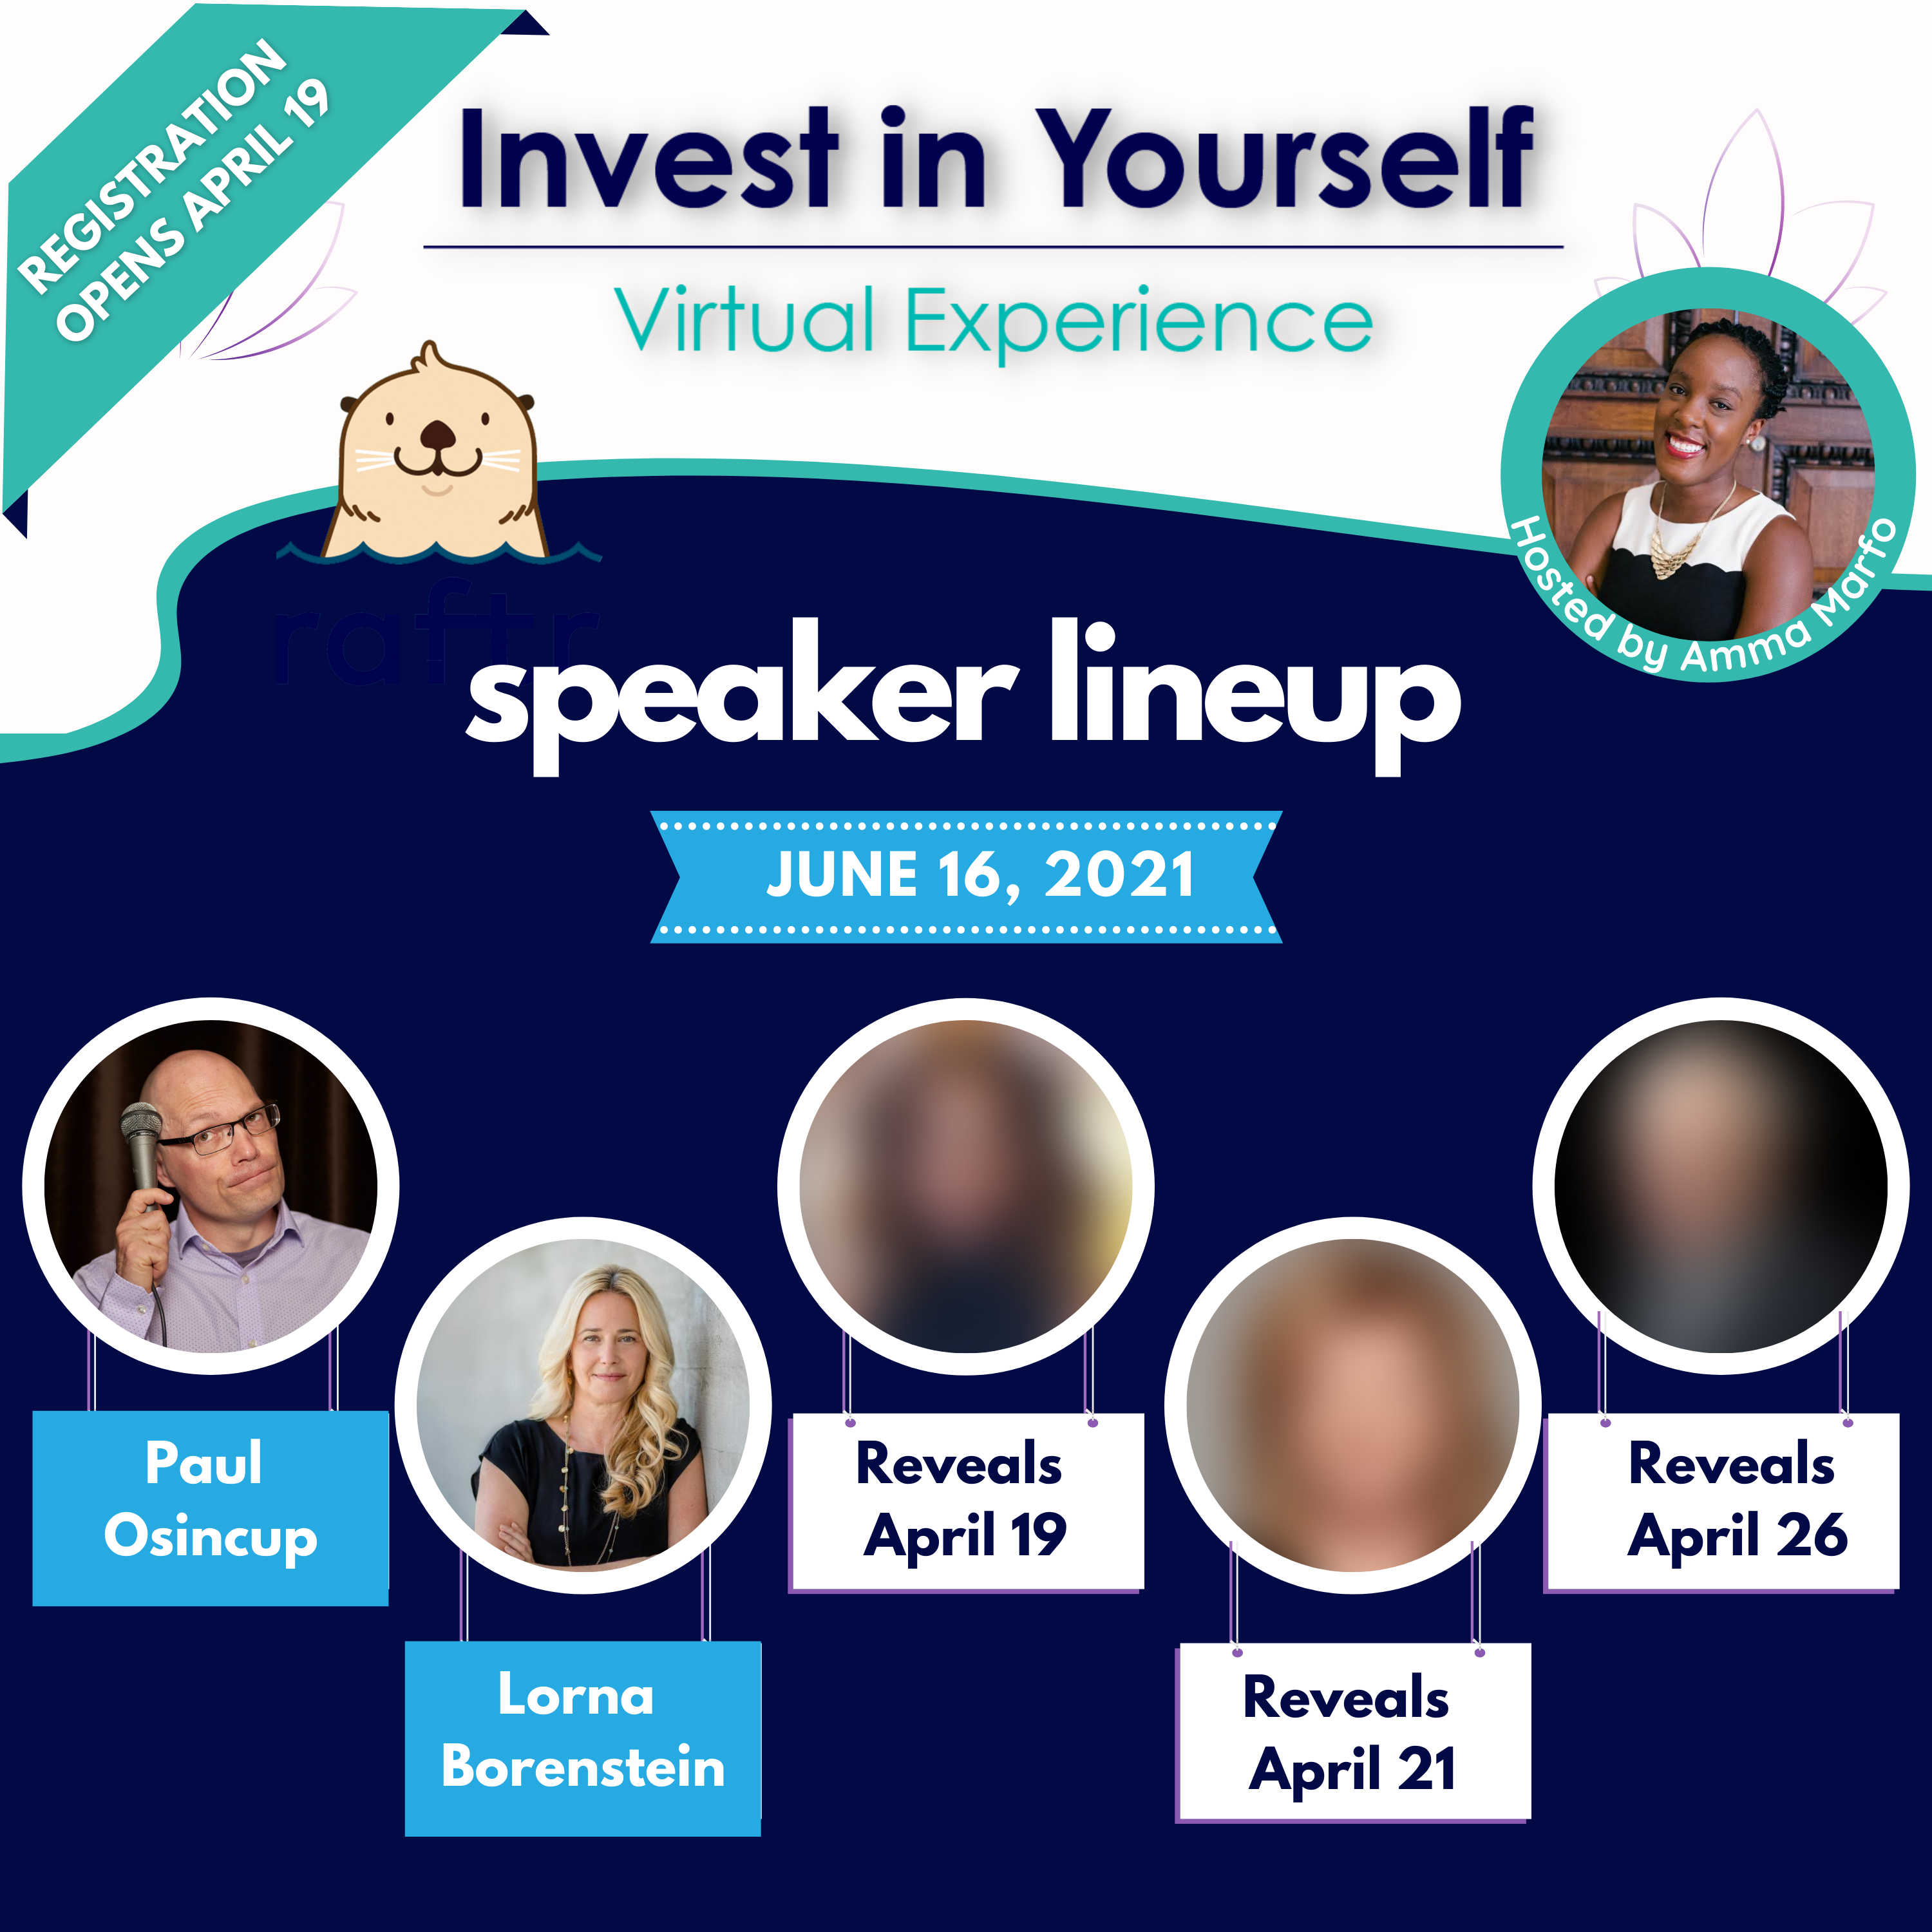 Invest in Yourself: Announcing Lorna Borenstein